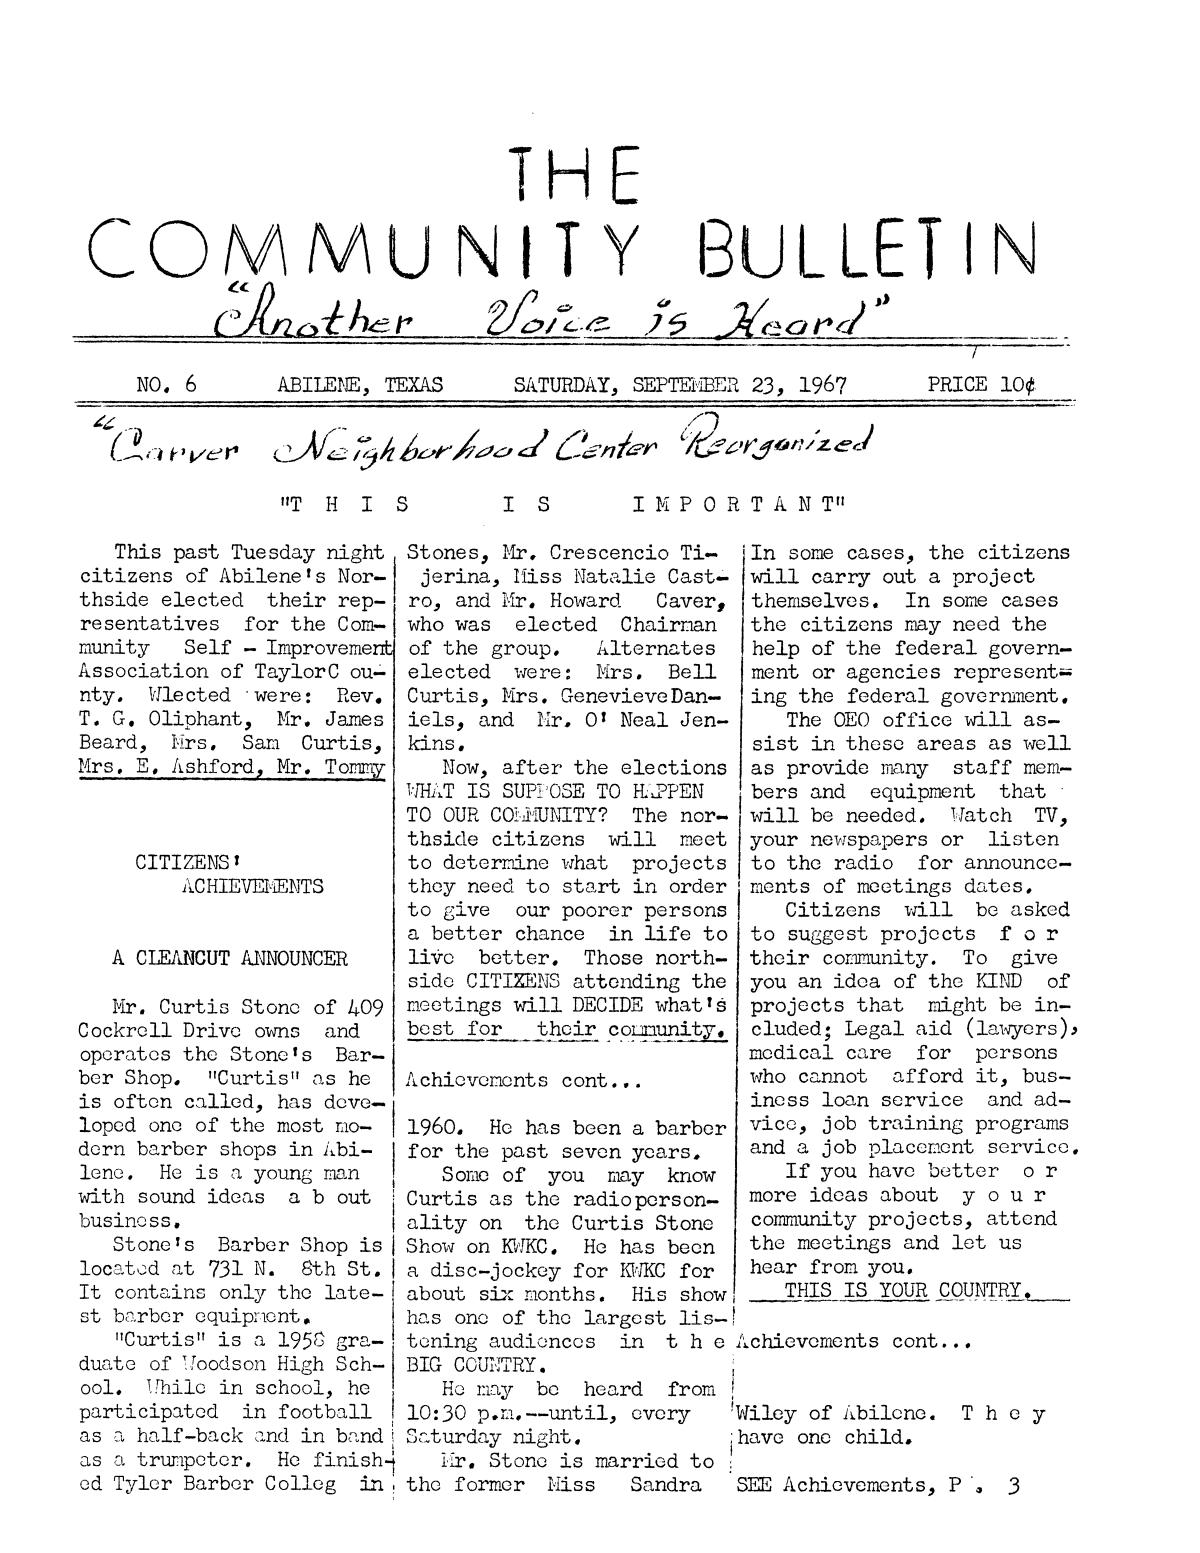 The Community Bulletin (Abilene, Texas), No. 6, Saturday, September 23, 1967                                                                                                      1